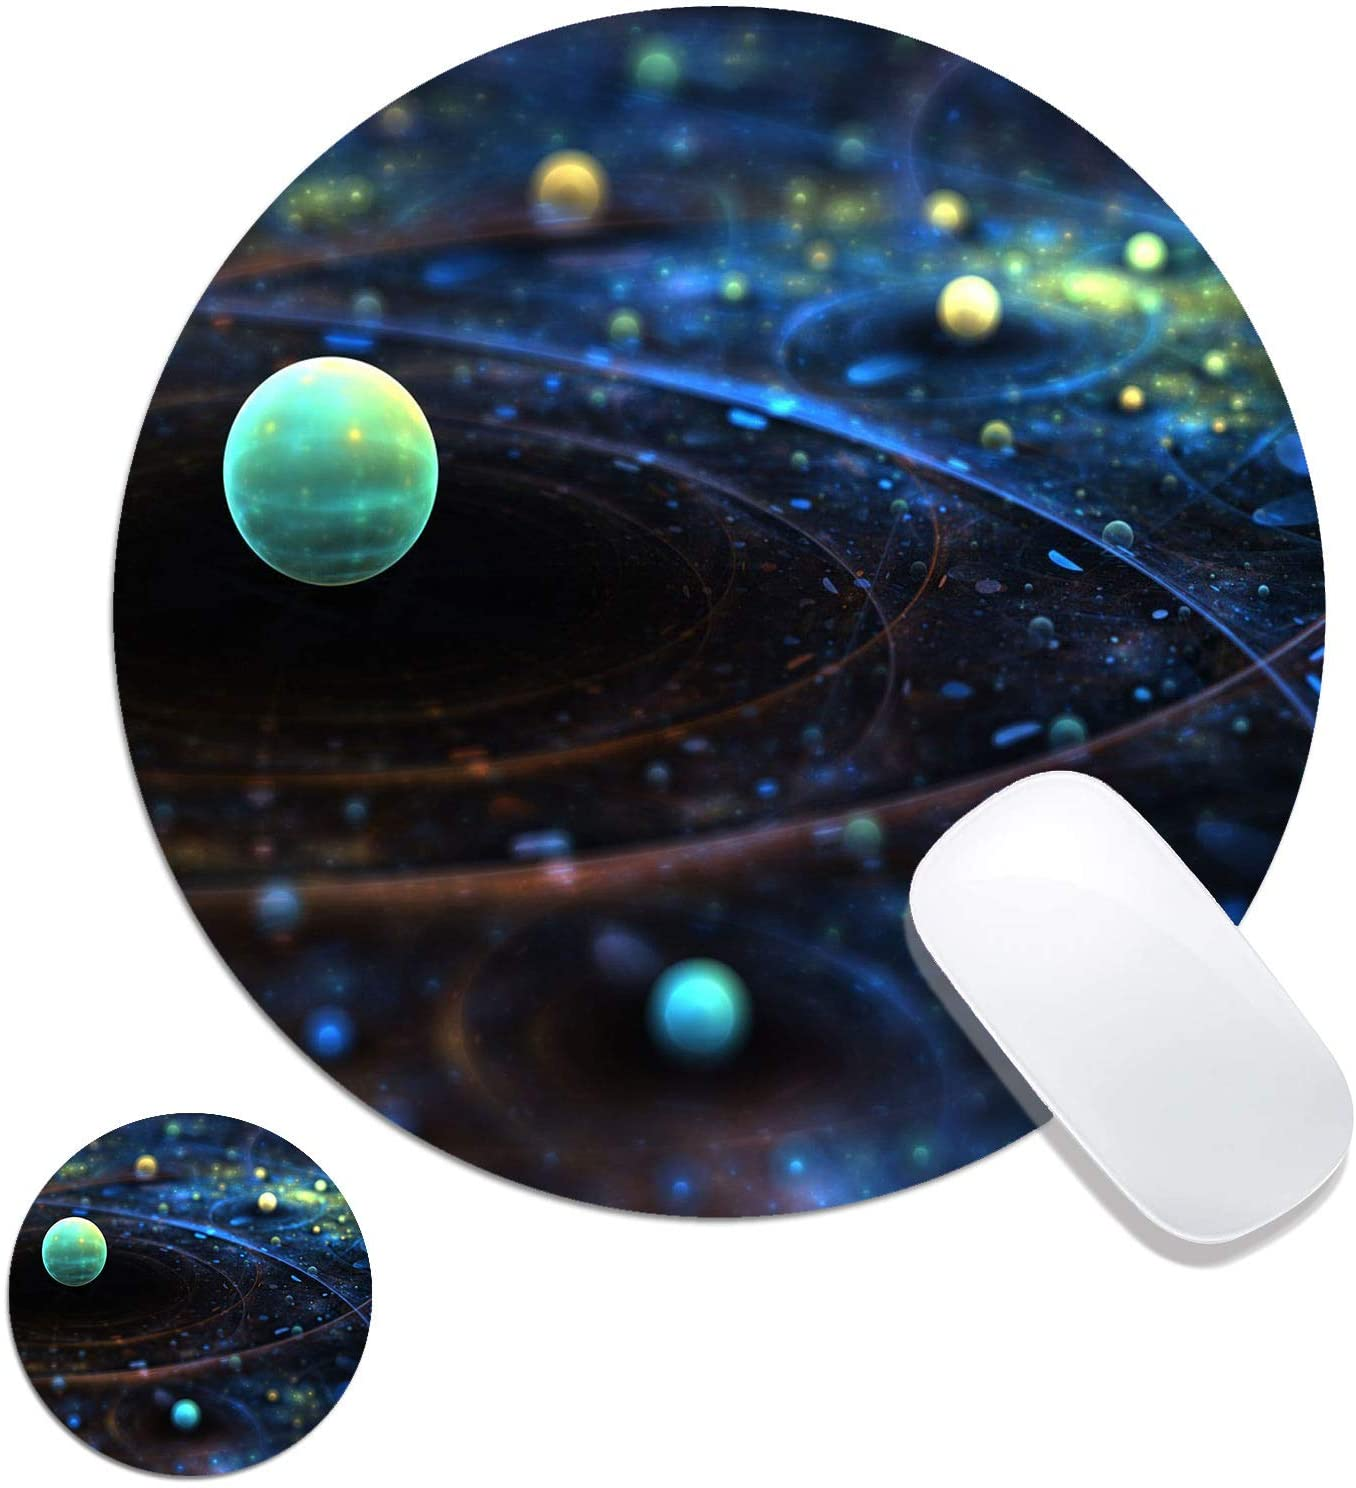 Round Mouse Pad, Space Galaxy Customized Designs Non-Slip Rubber Base Gaming Mouse Pads and Coaster Set for Mac, PC, Computers. Ideal for Working Or Game 7.9x7.9inch